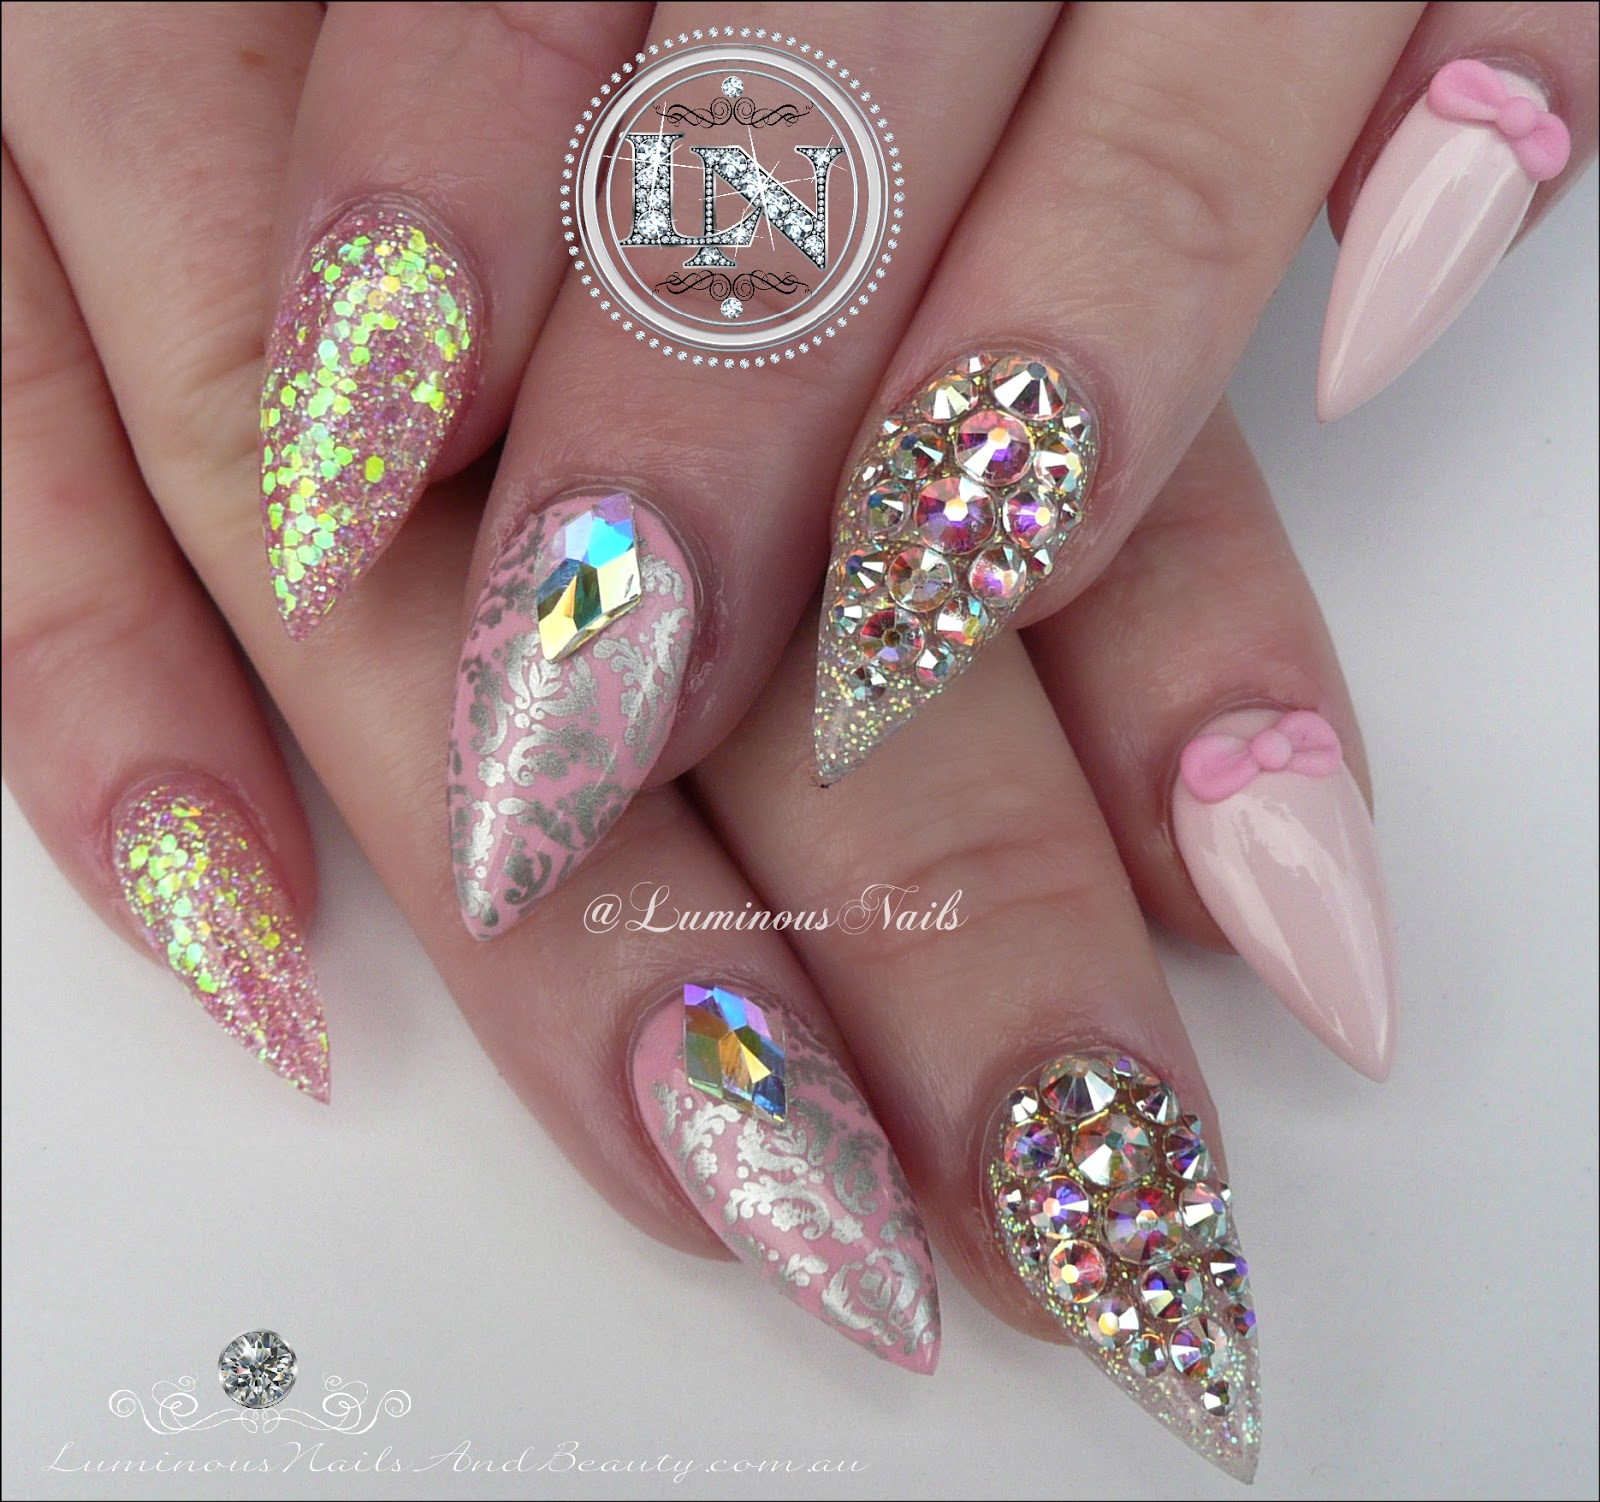 Luminous nails girly nails pretty in pink with bling cute girly nails pretty in pink with bling cute pink acrylic nails prinsesfo Choice Image